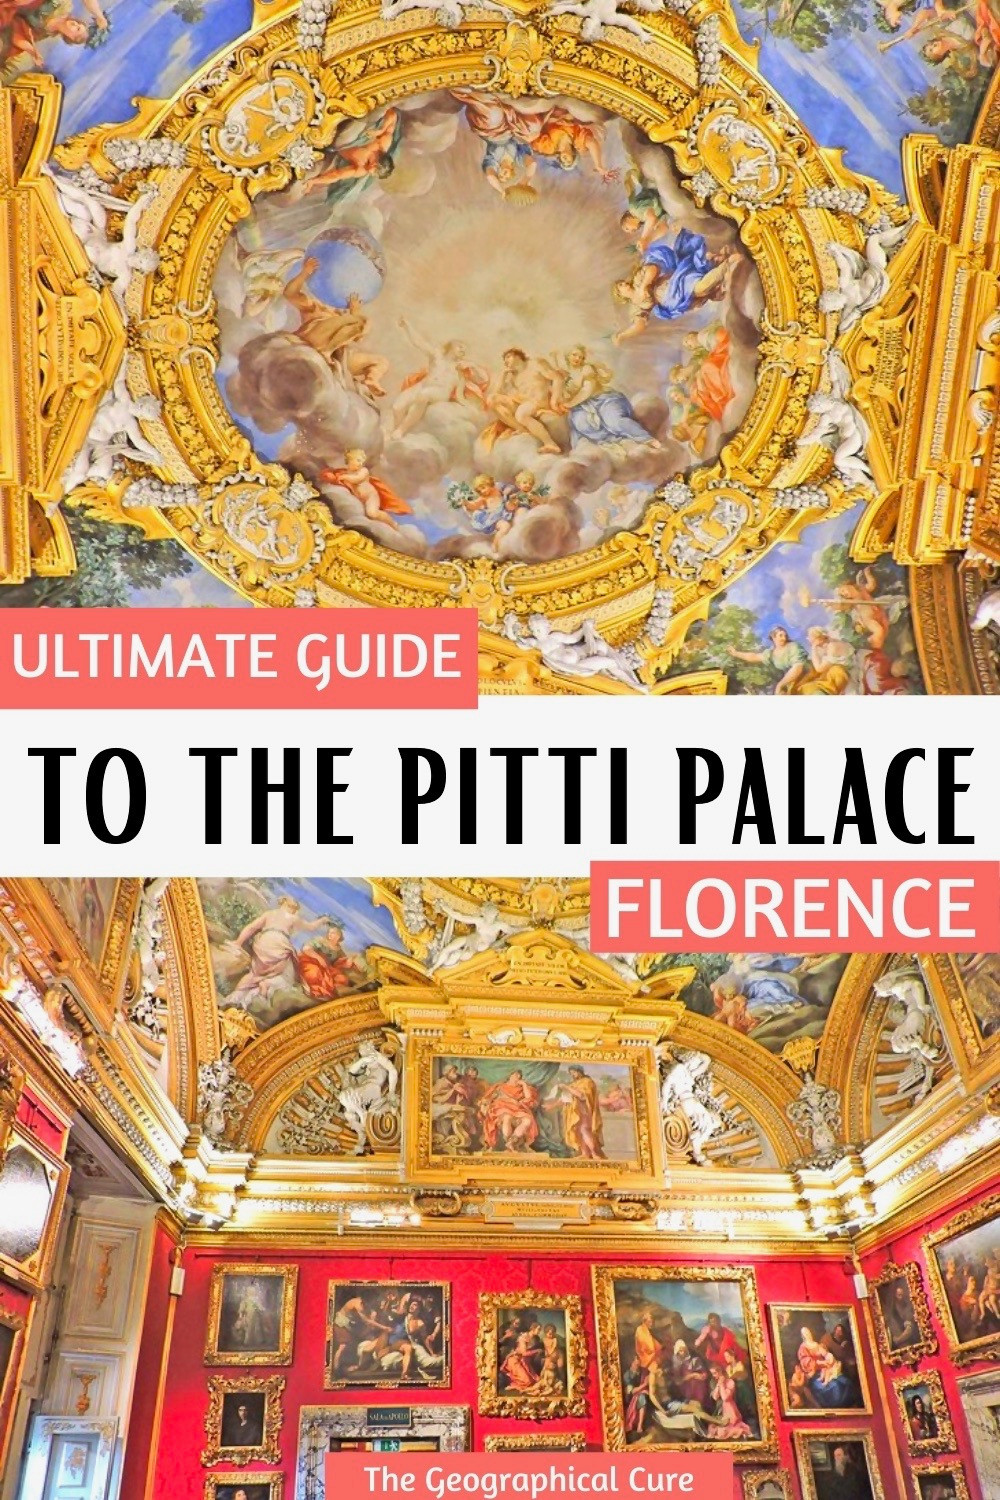 ultimate guide to the masterpieces of the Pitti Palace, a must see site in Florence